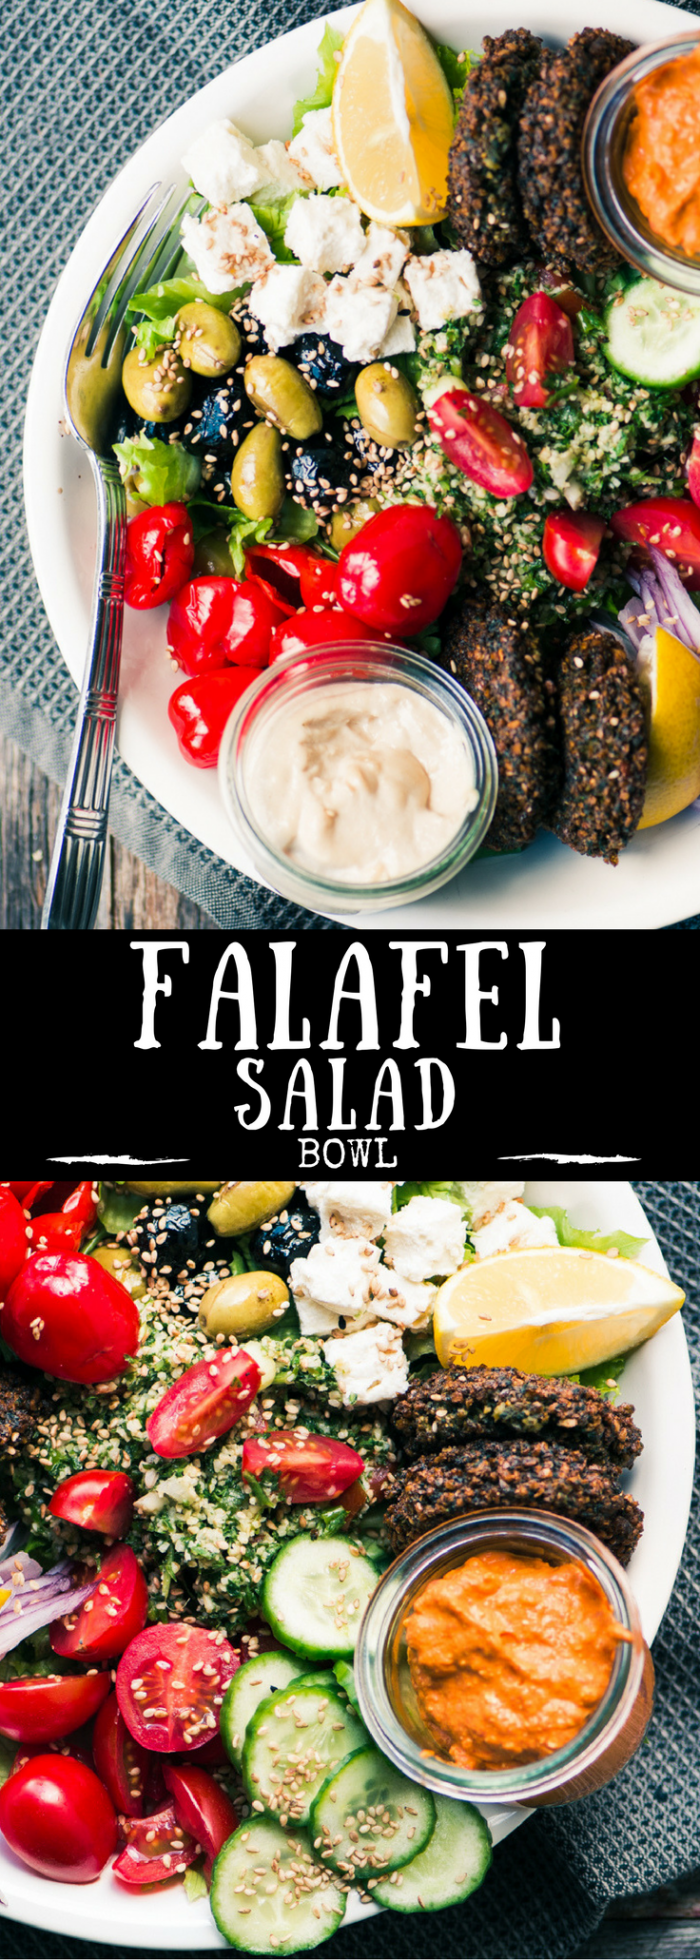 My Falafel Salad Bowl is such a fabulous vegetarian main course salad, it makes Meatless Monday everybody's favorite night of the week! #falafel #chickpeas #MiddleEastern #vegeetarian #salad #Syrian #Lebanese #Israeli #Palestinian #pitabread #veggieburger